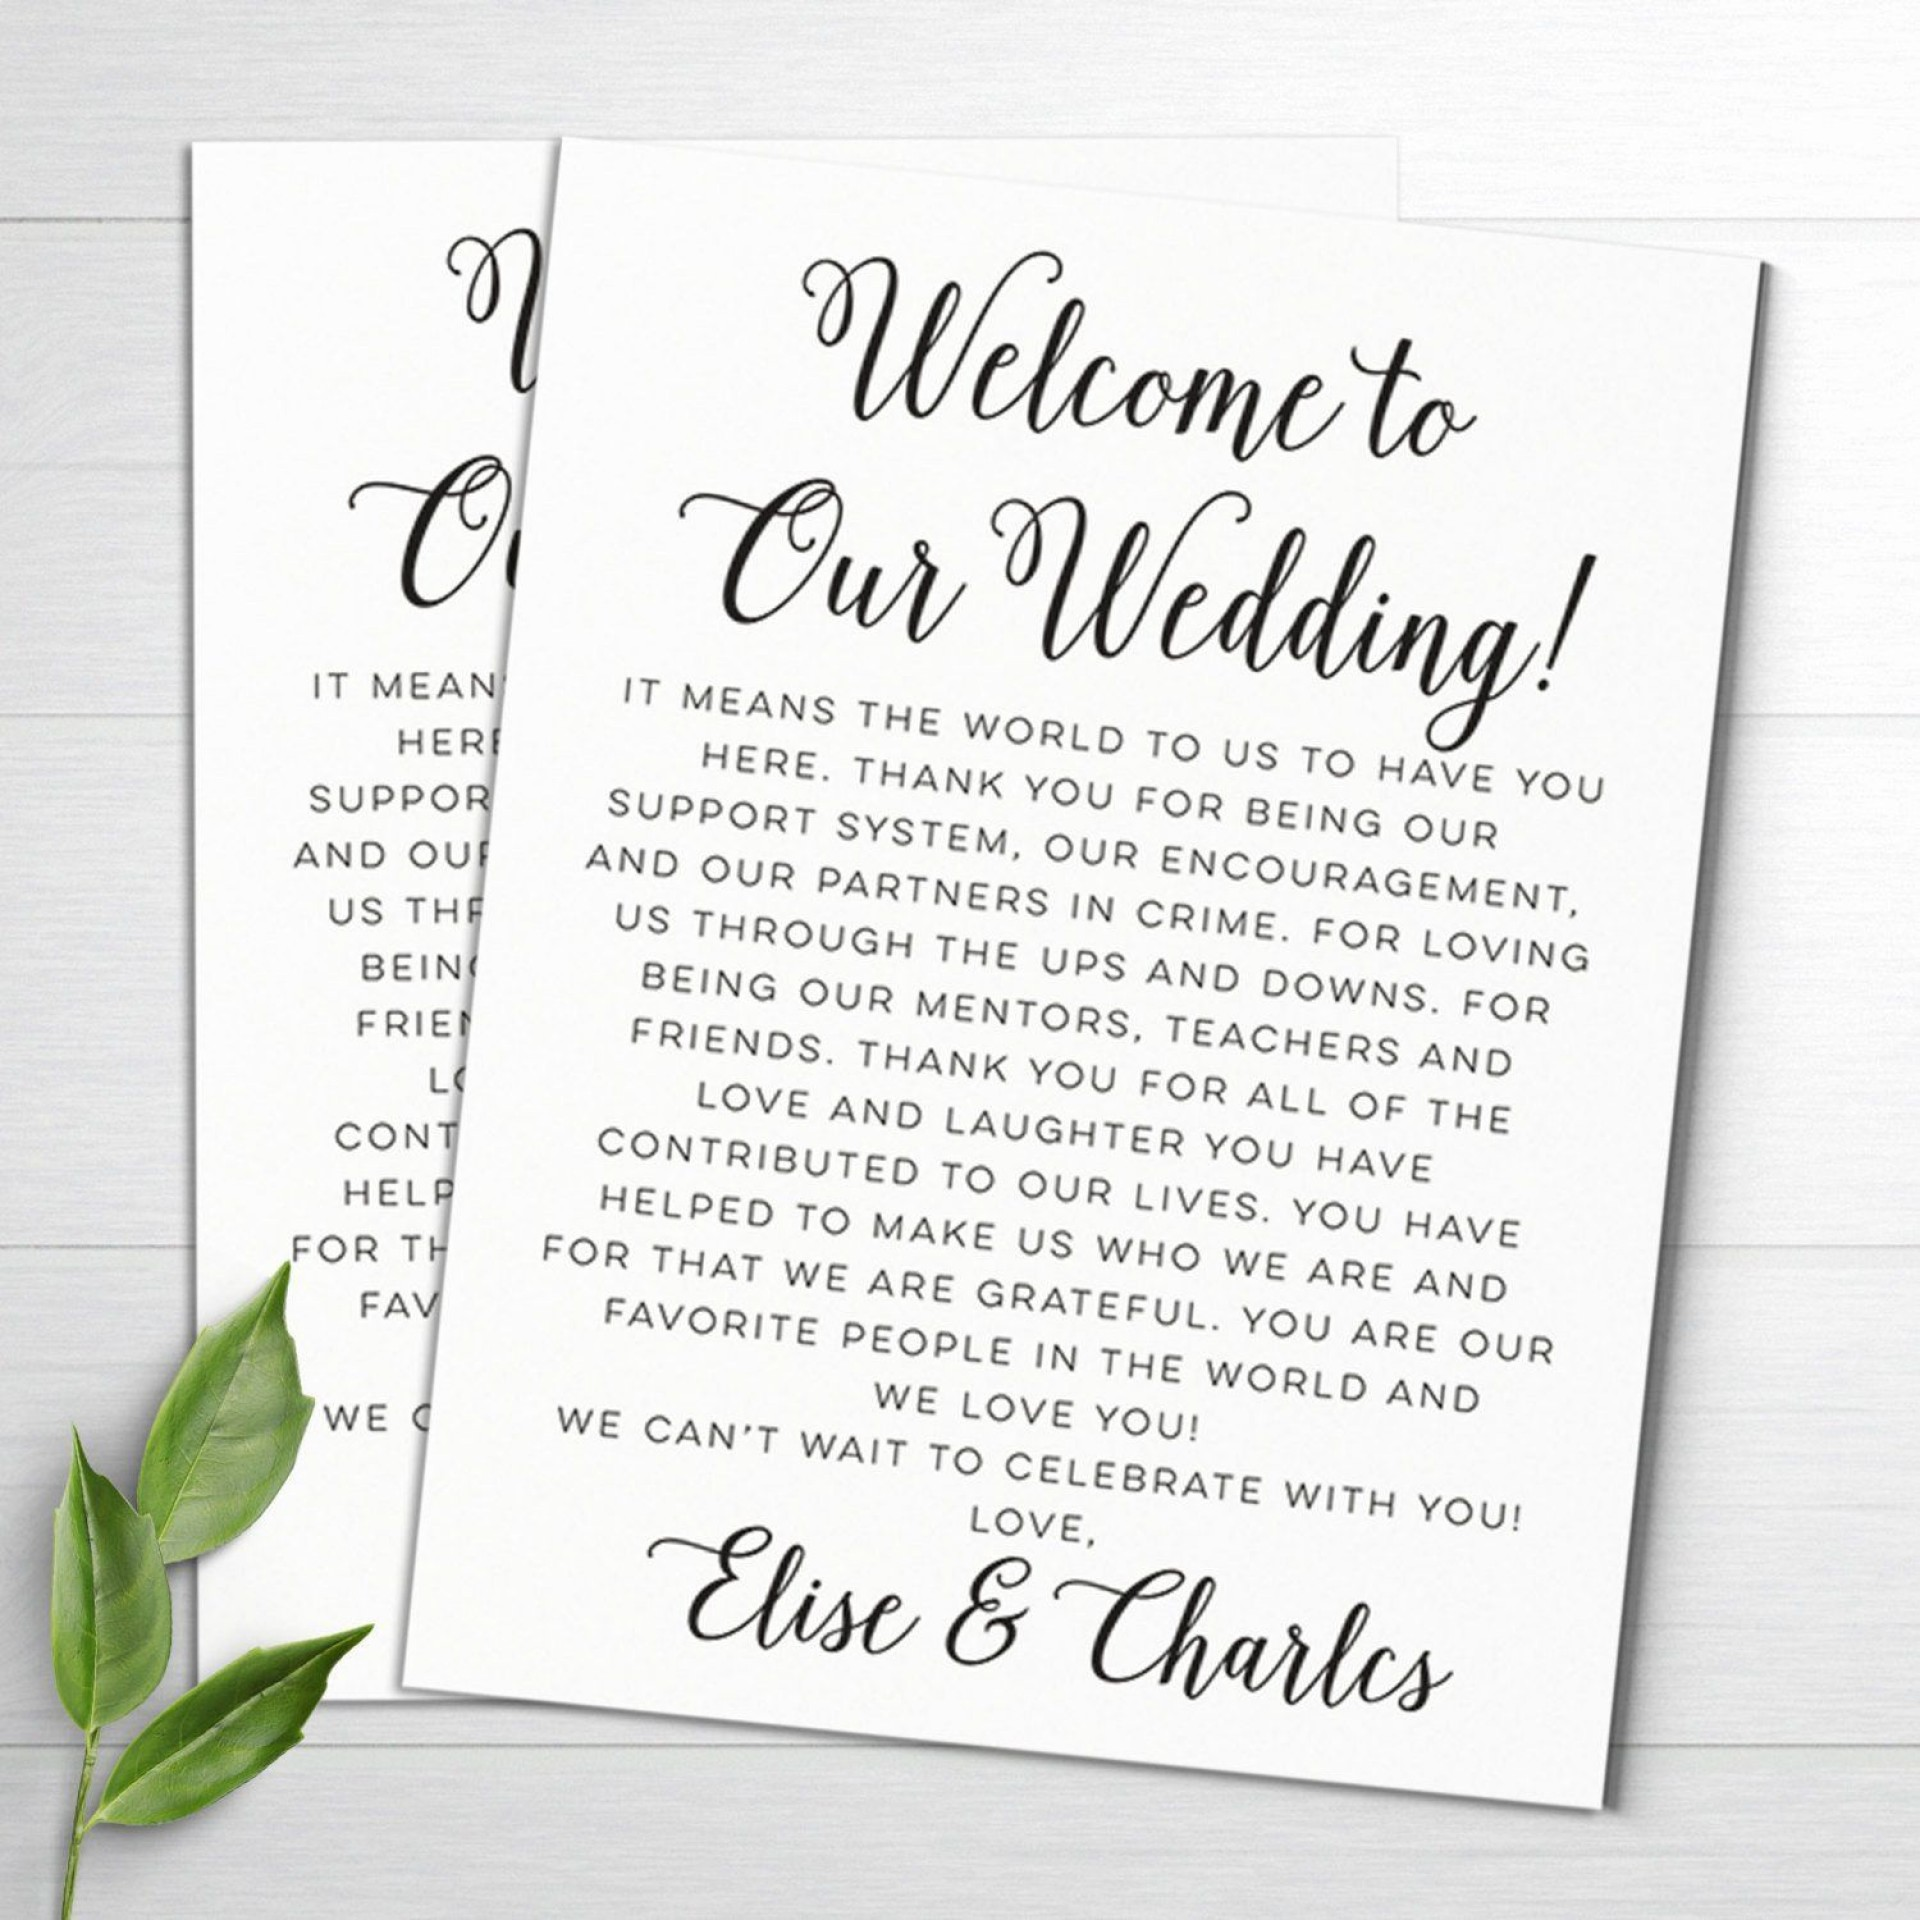 003 Stunning Wedding Welcome Letter Template Word Highest Clarity 1920